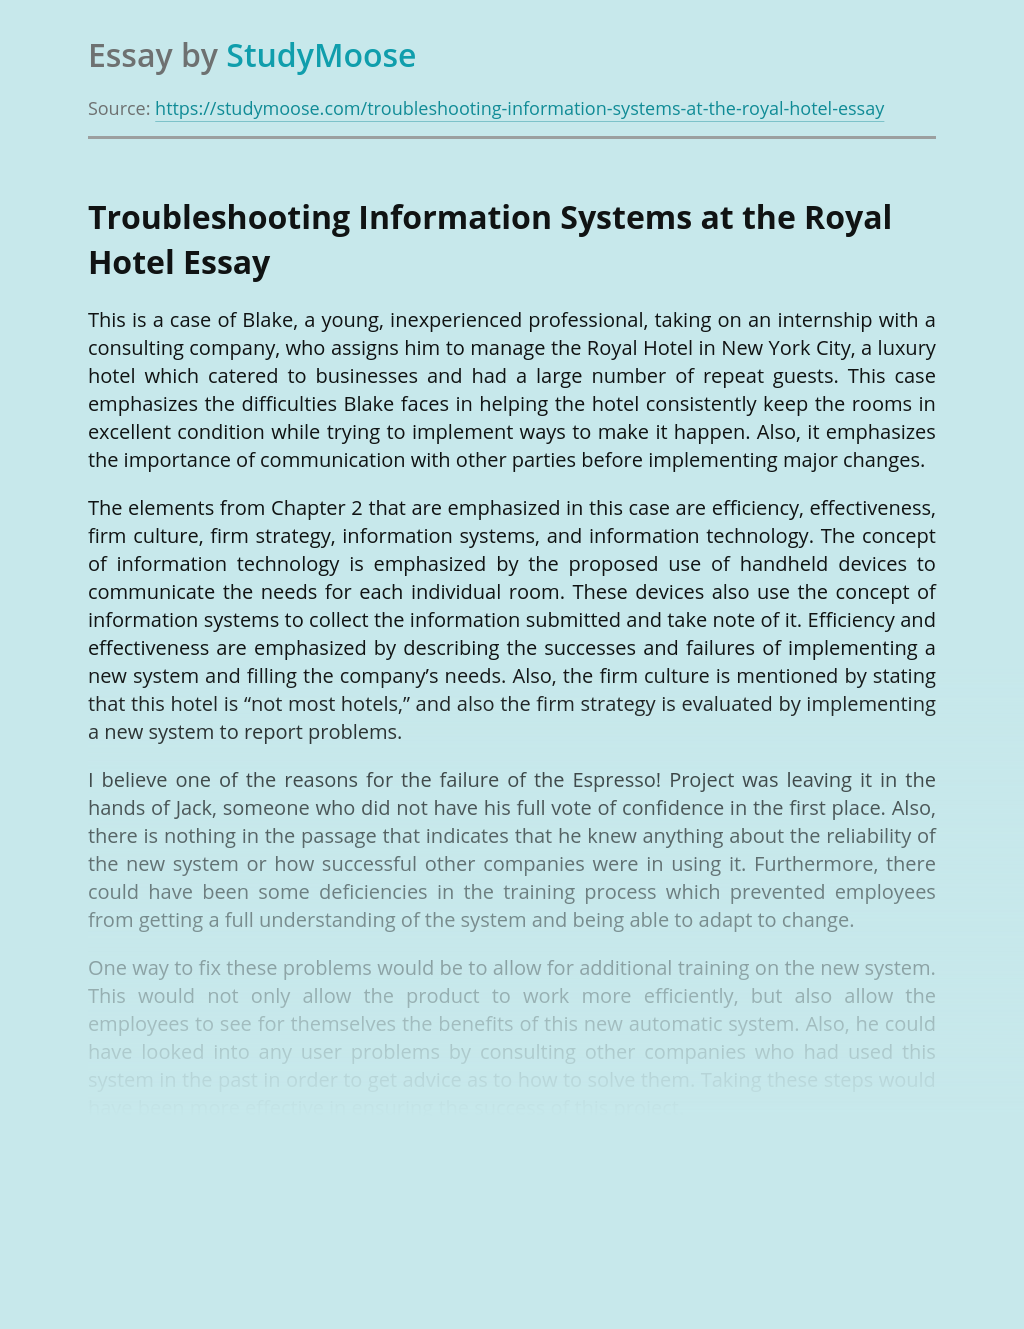 Troubleshooting Information Systems at the Royal Hotel